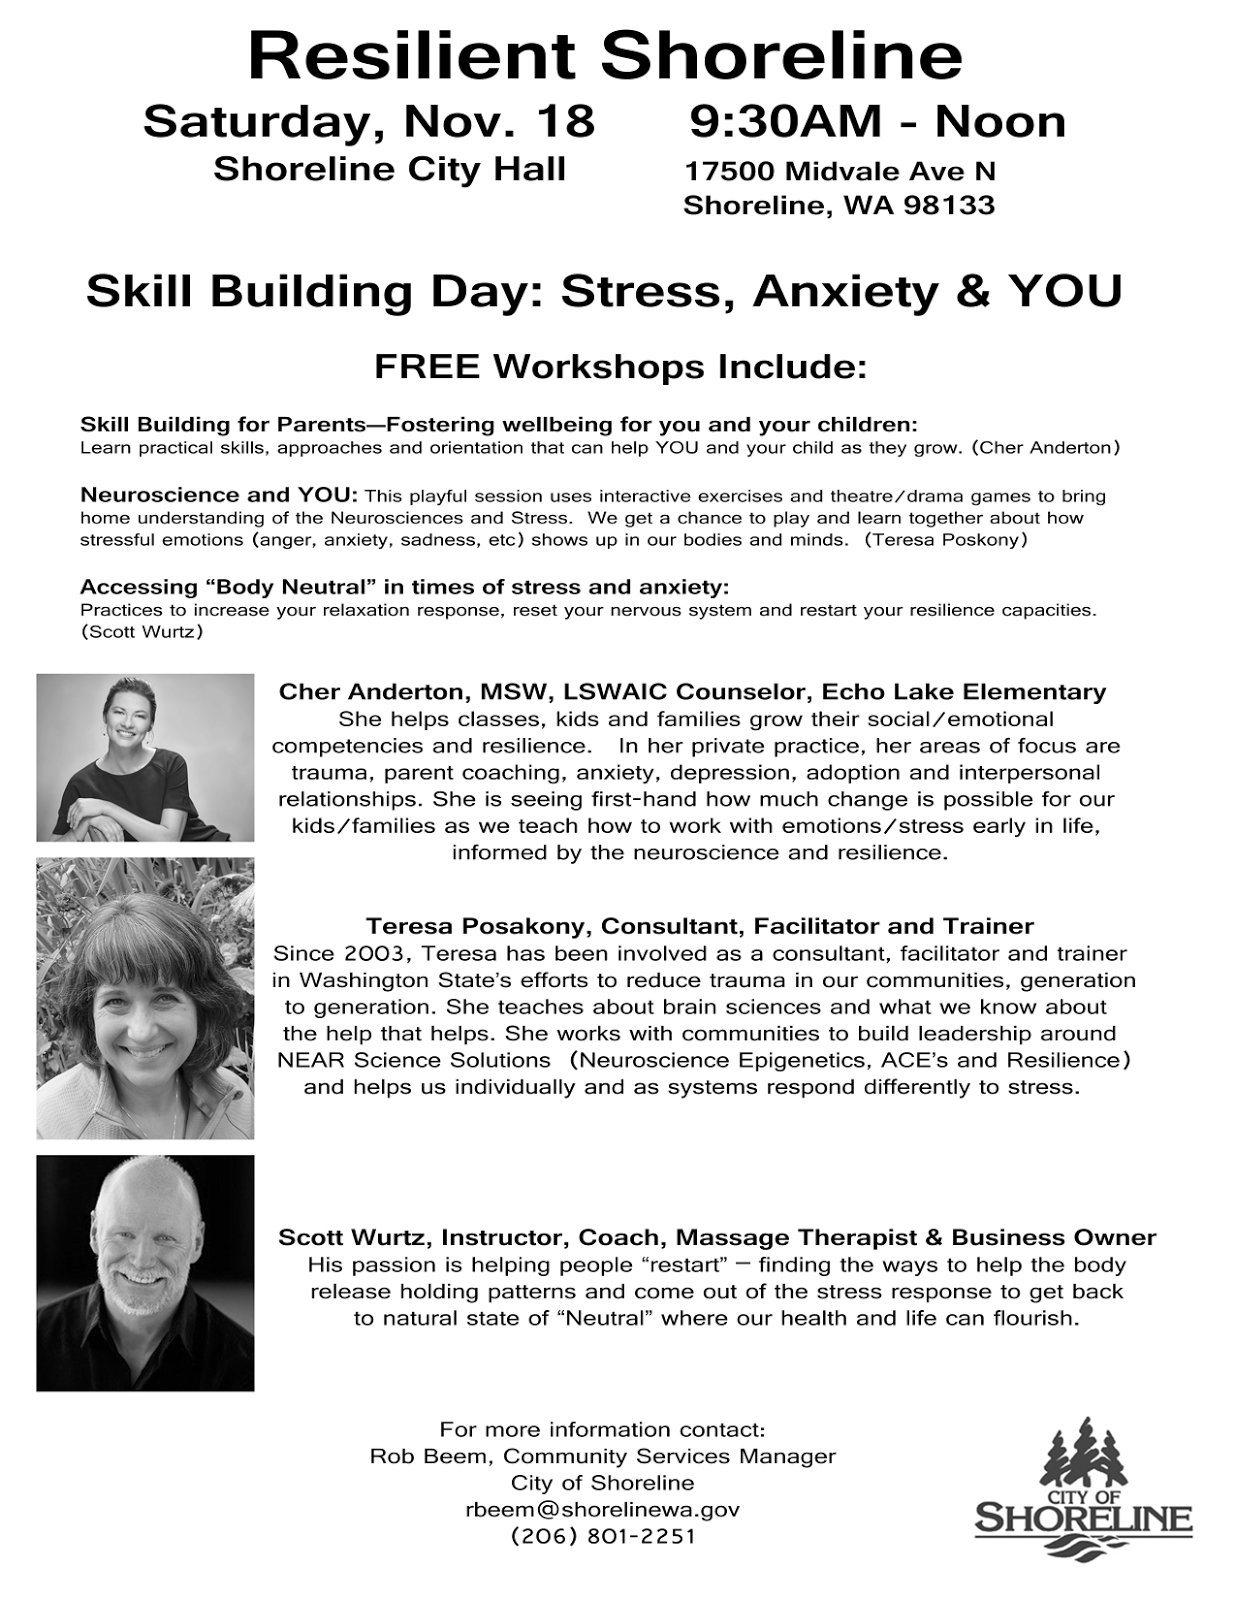 Washington state government for kids - Resilient Shoreline Free Workshops To Help Youth Build Skills Against Stress And Anxiety